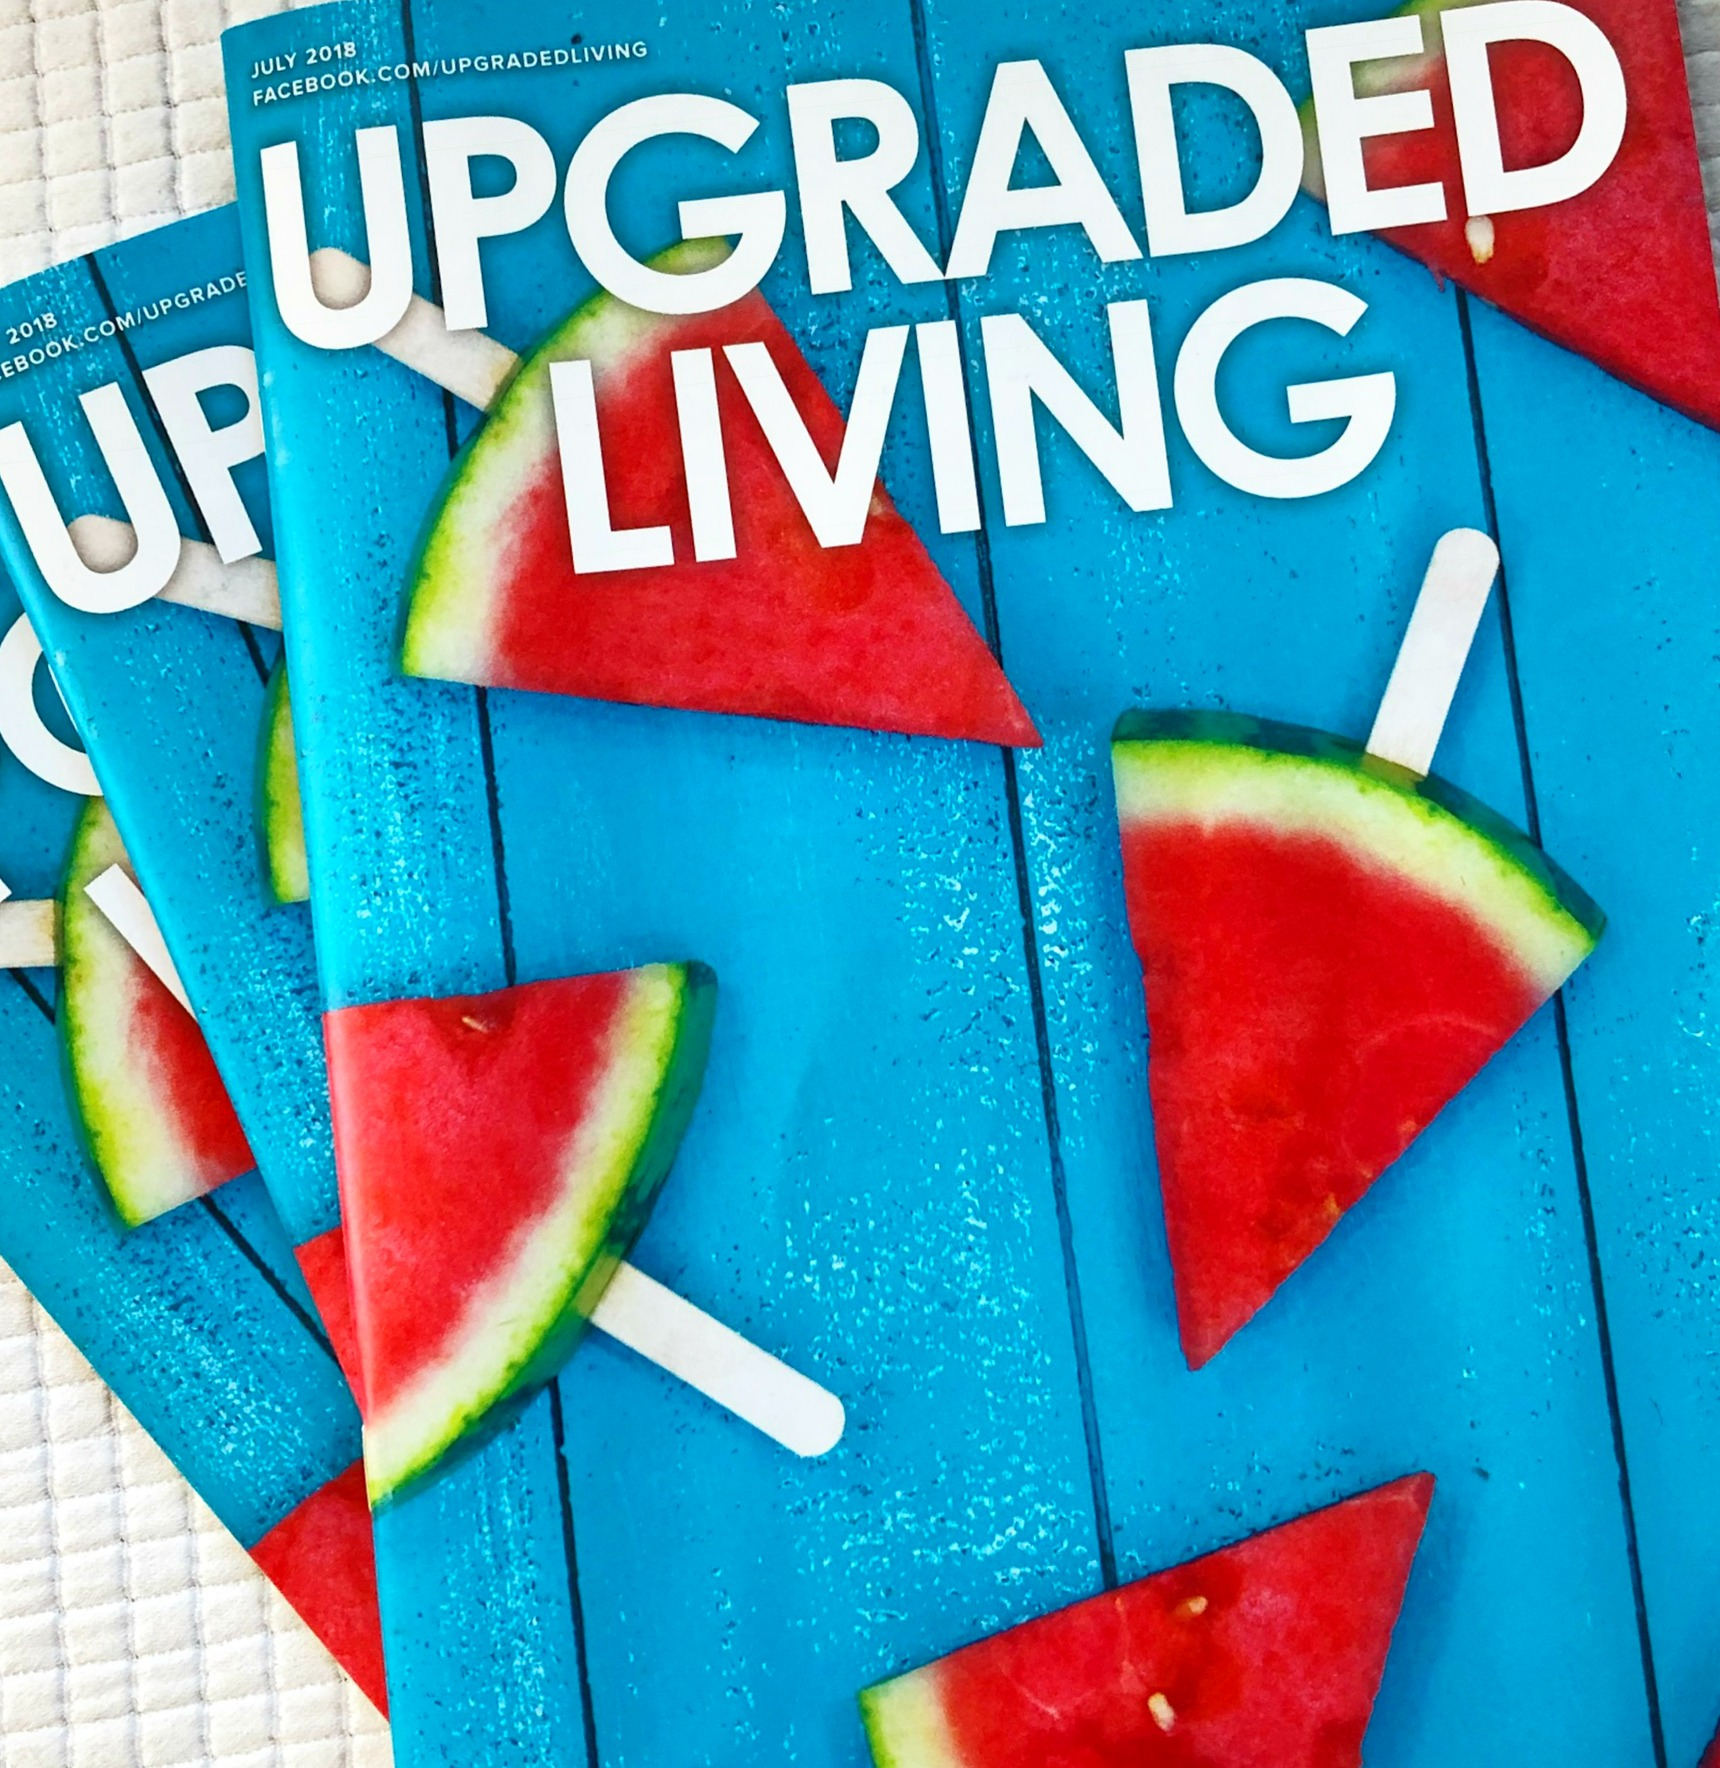 Curated Travel in Upgraded Living Magazine! -